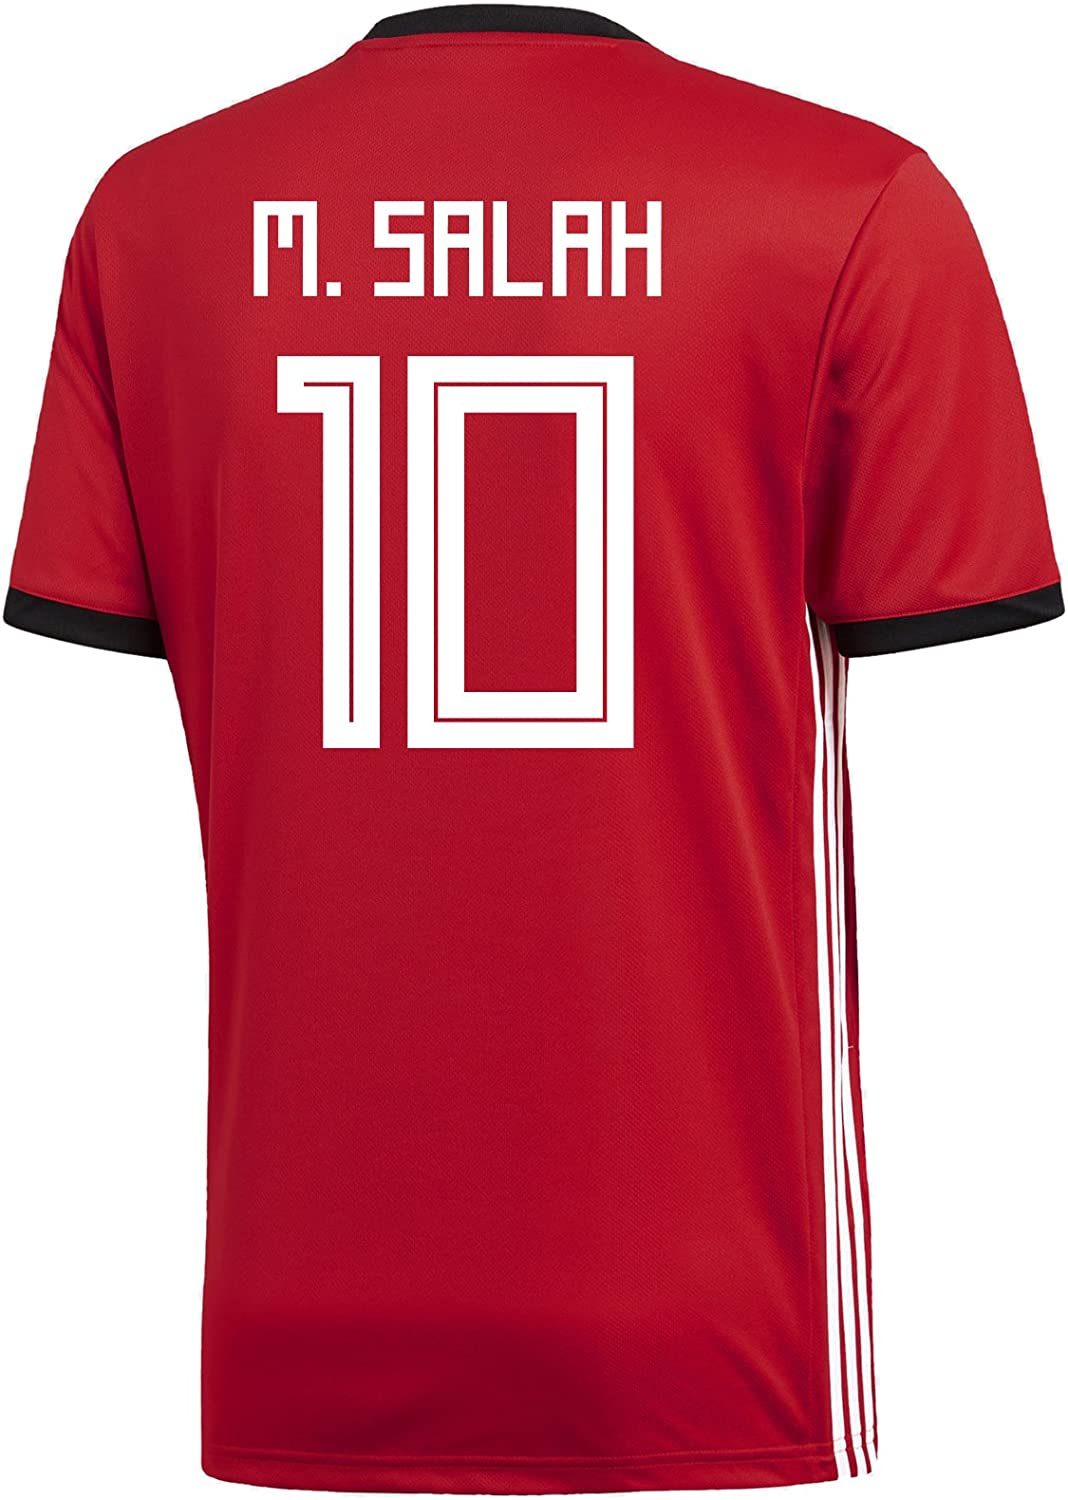 adidas M. Salah #10 Egypt Home Men's Soccer Jersey World Cup Russia 2018